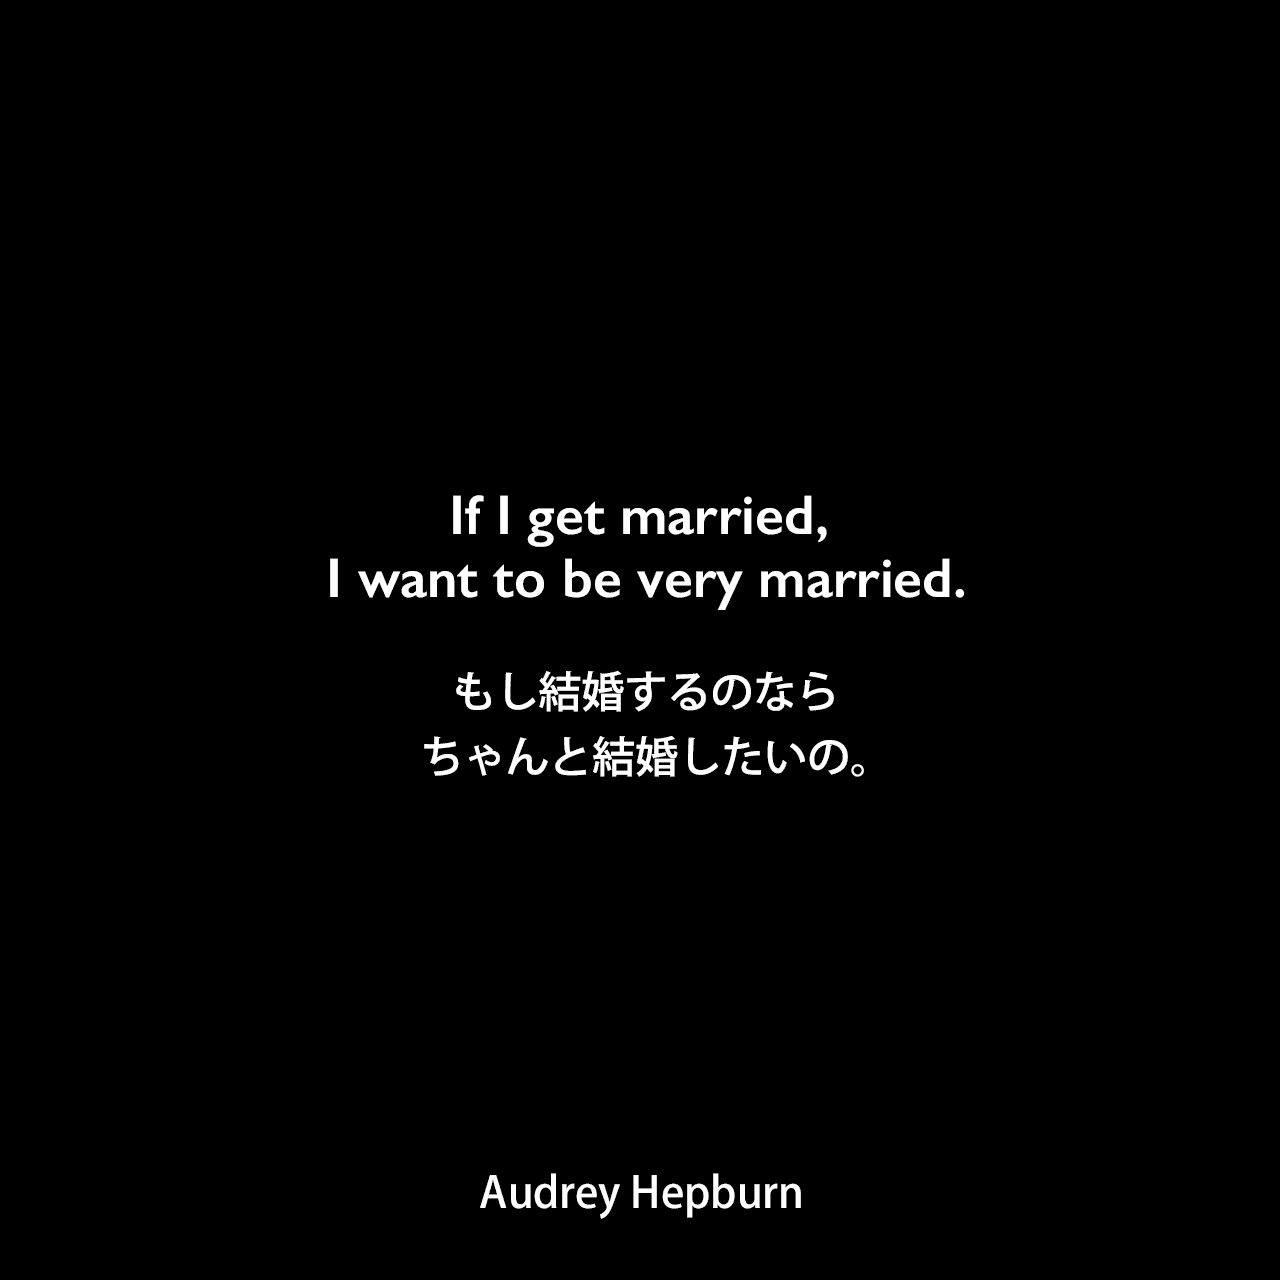 If I get married, I want to be very married.もし結婚するのなら、ちゃんと結婚したいの。